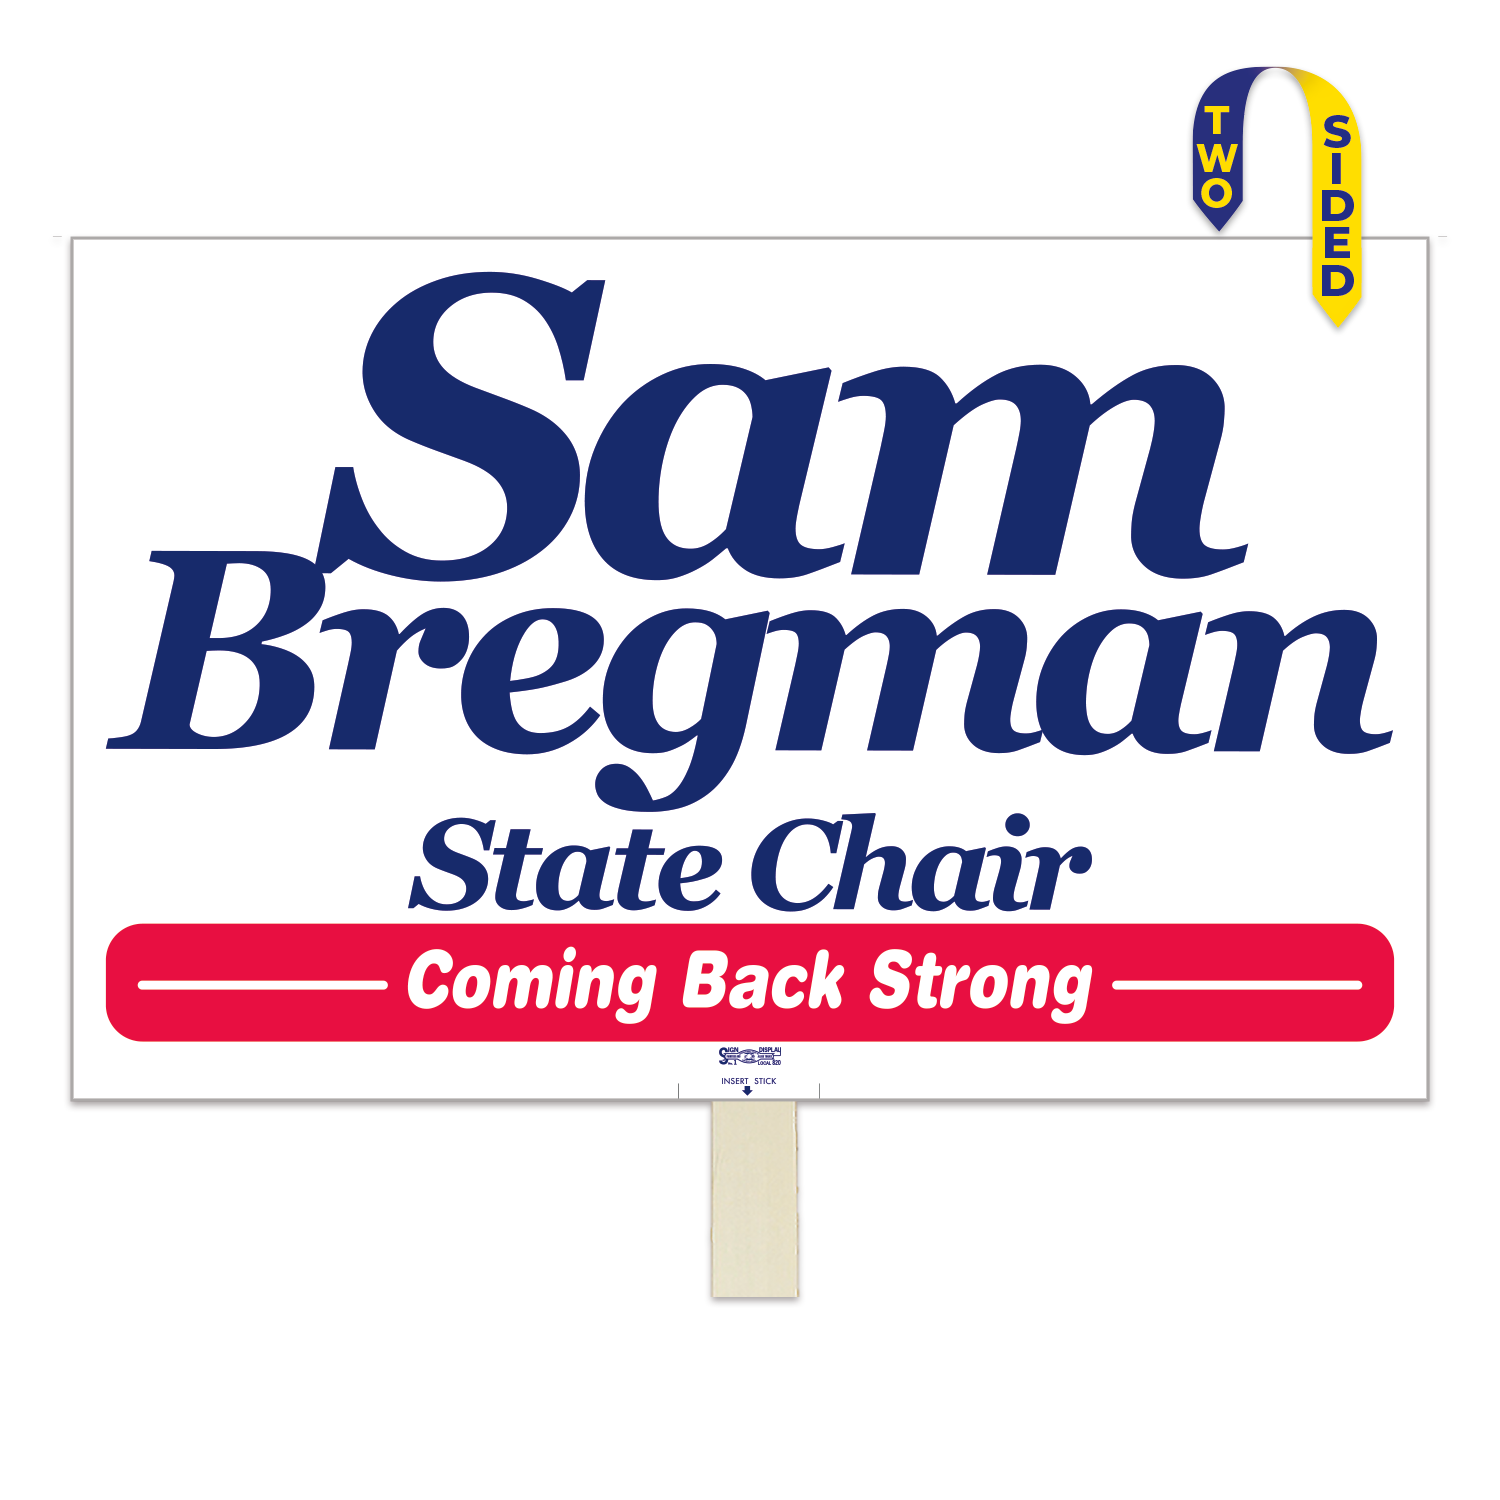 https://www.sswprinting.com/images/products_gallery_images/19811_Sam-Bregman_hi-res.png